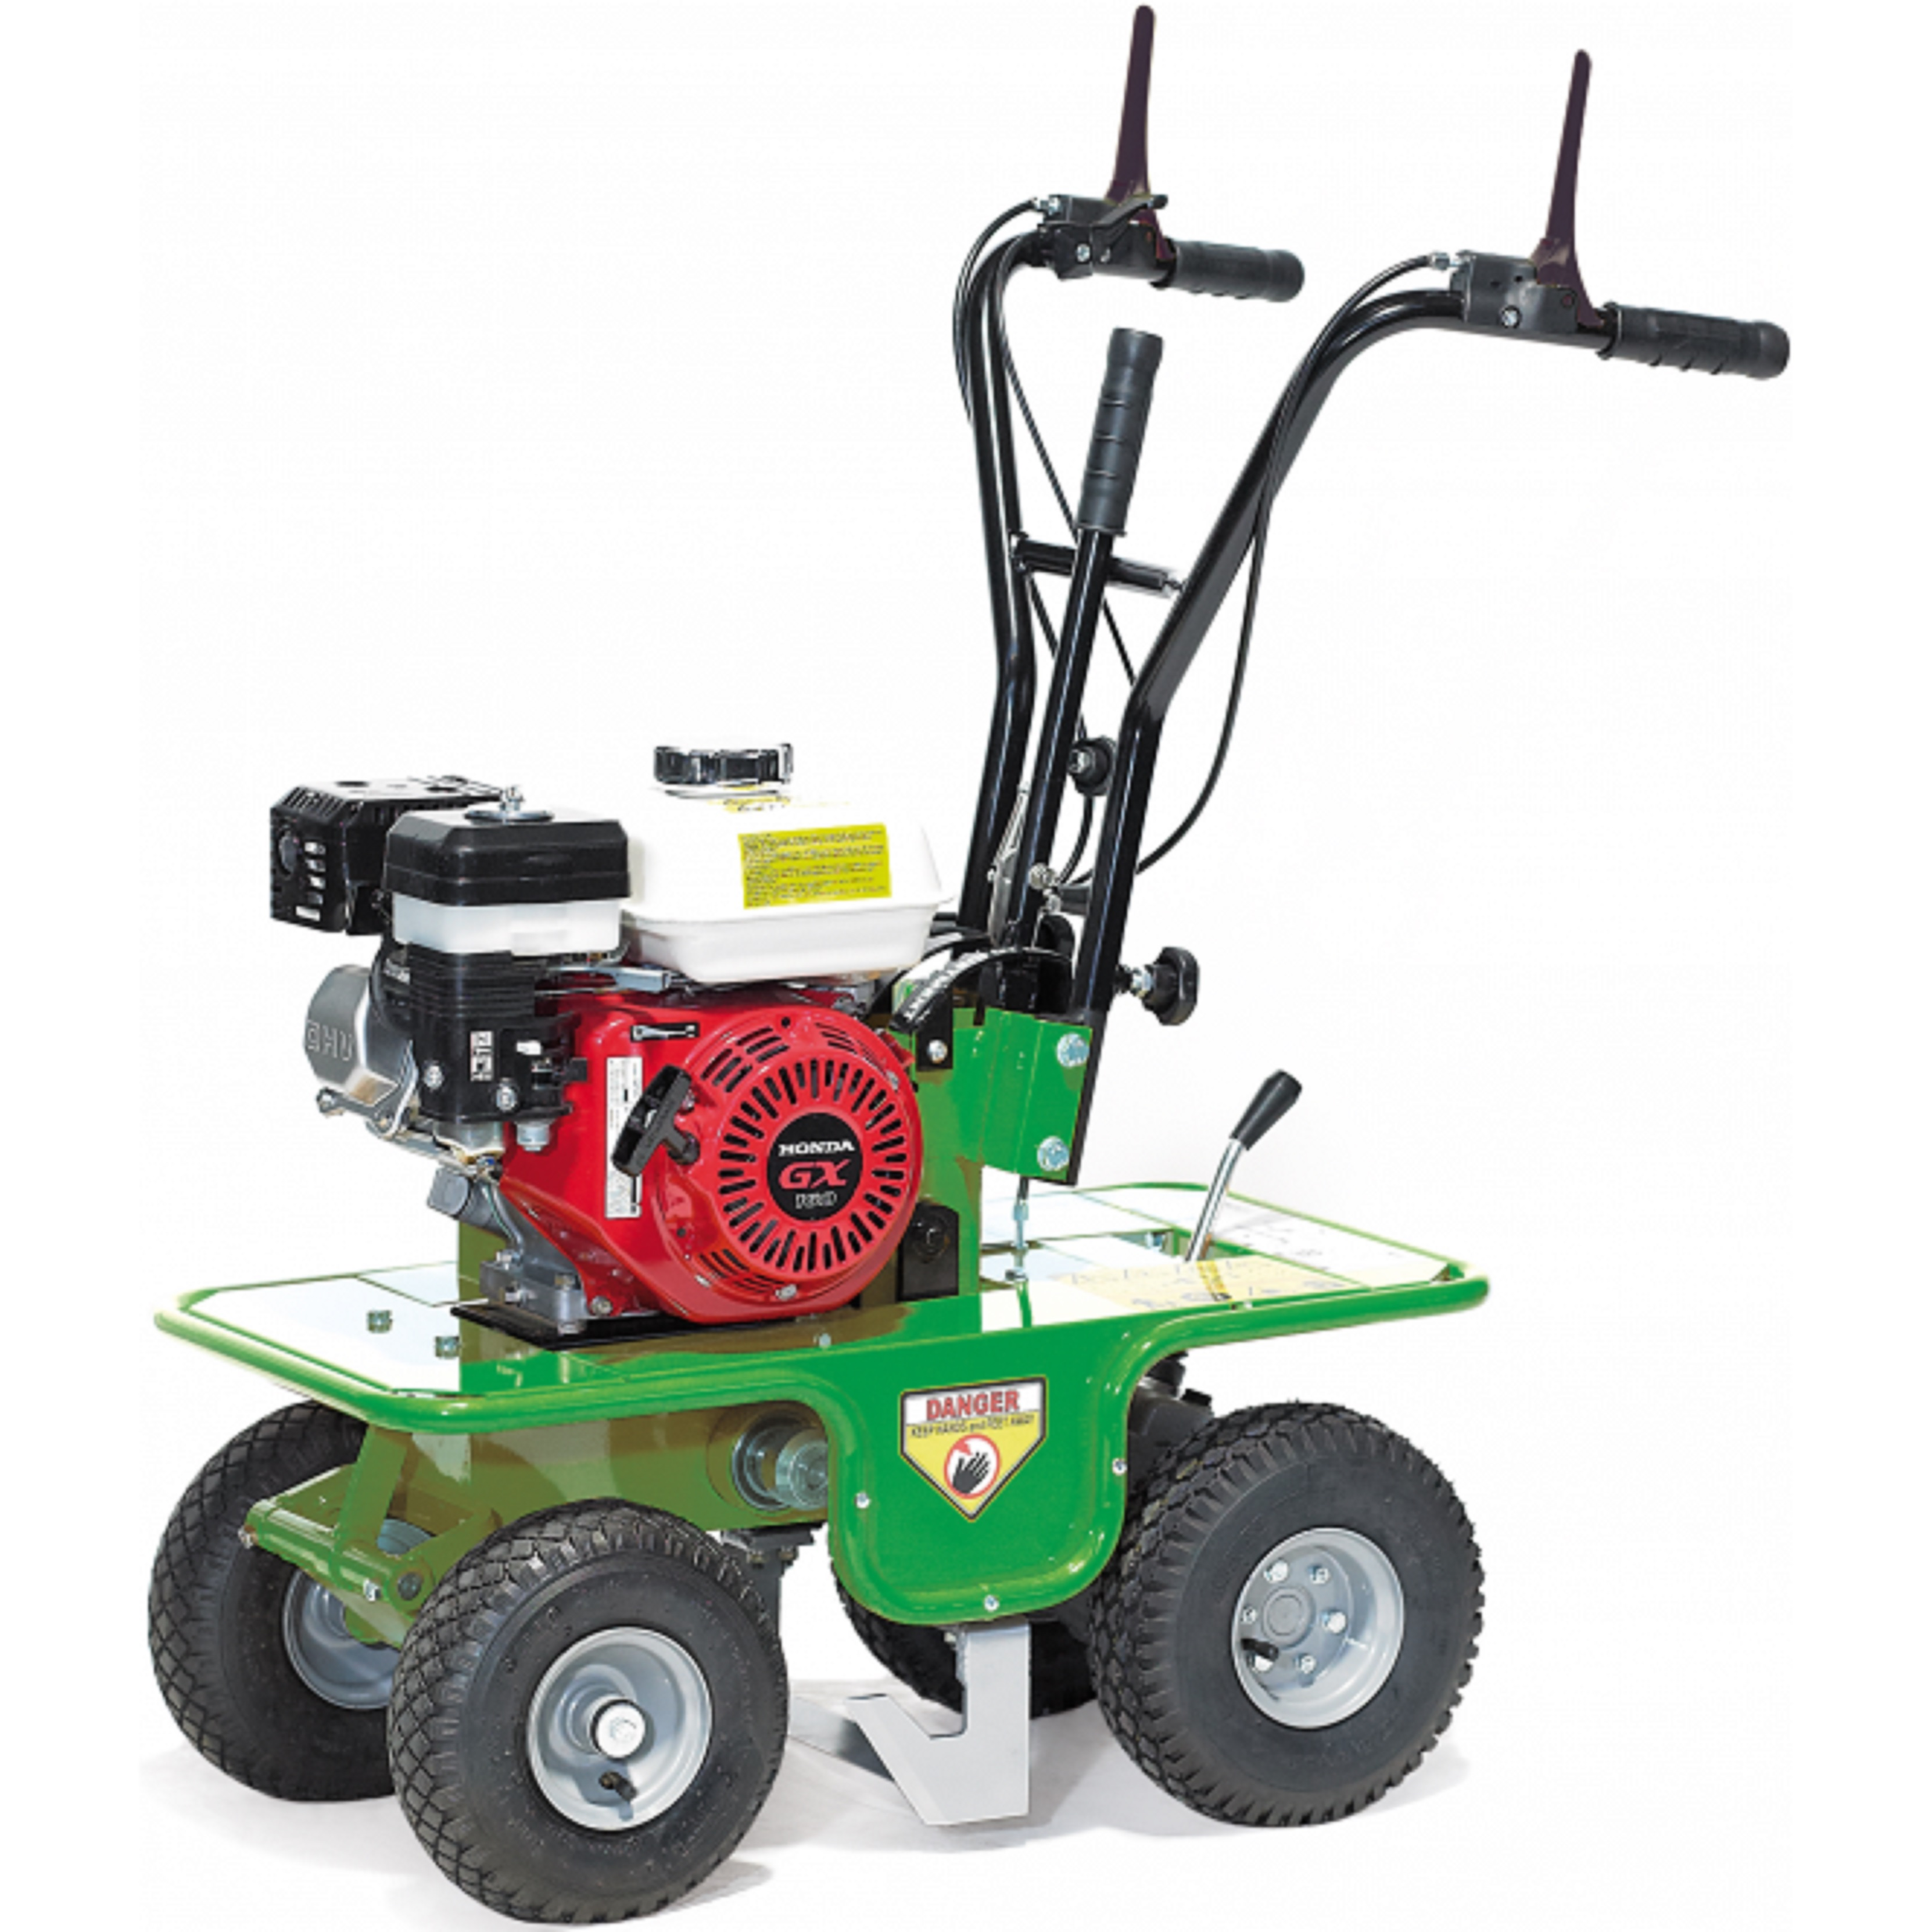 Active 30cm Turf Cutter S/P Honda GX160 Engine